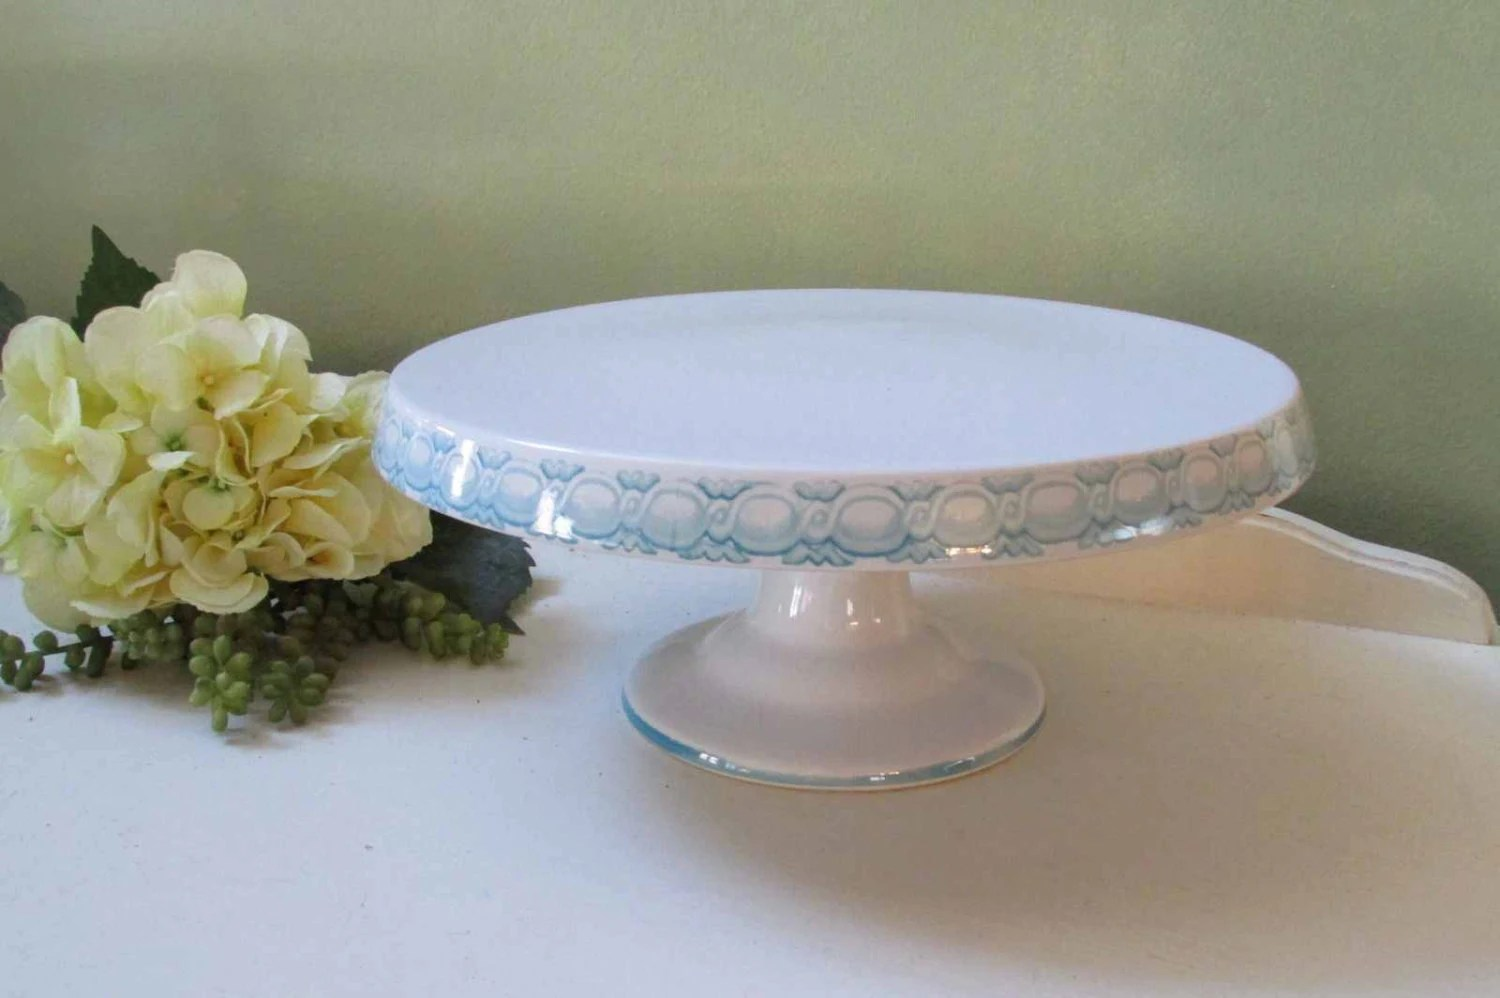 White Cake Plate Stand. Fusionbrands Serve It Up Plate